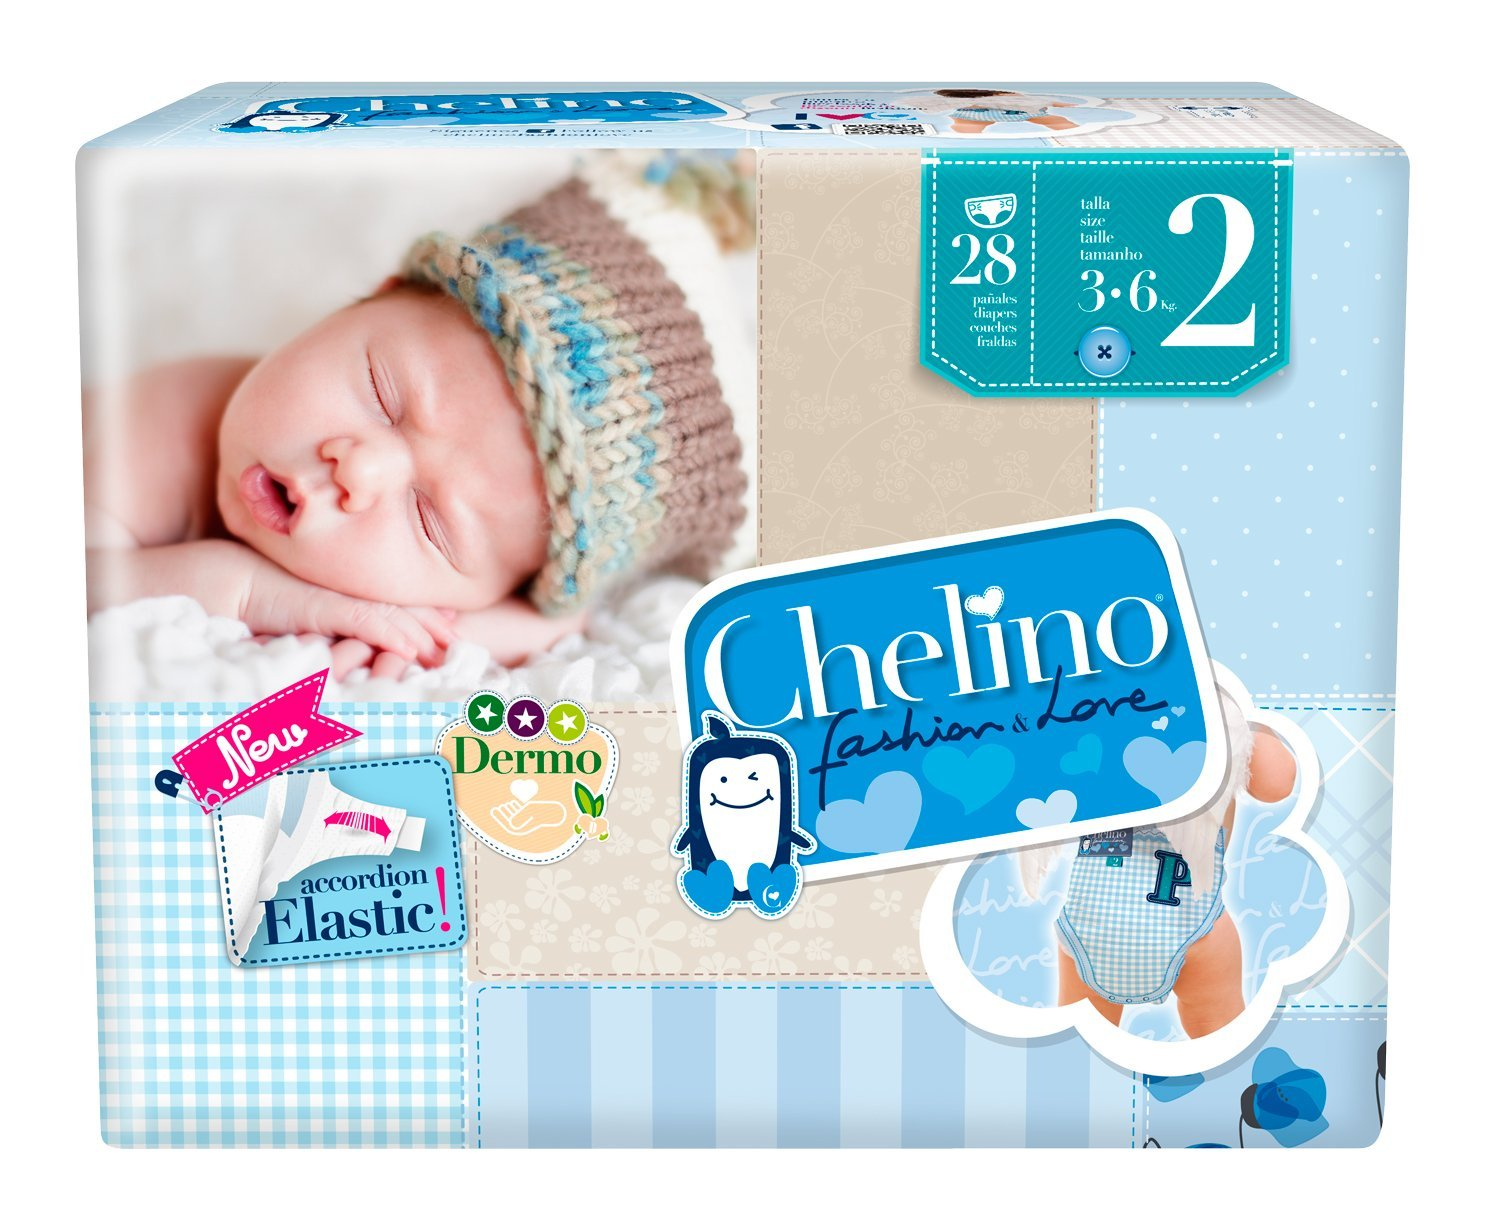 PAÑAL CHELINO LOVE T/2 3-6 KG 28 UDS product image